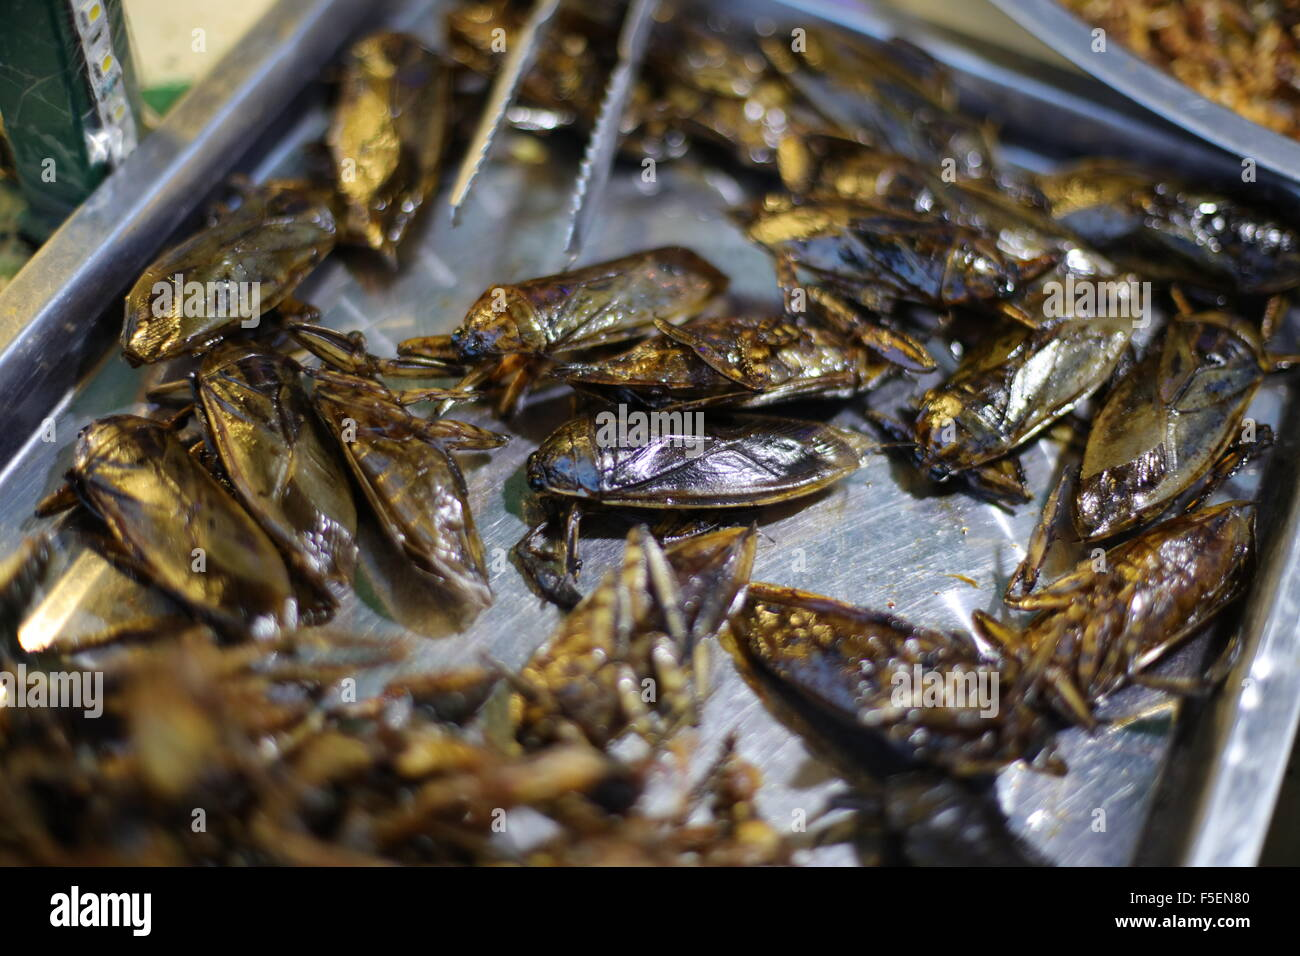 Fried cockroaches Stock Photo